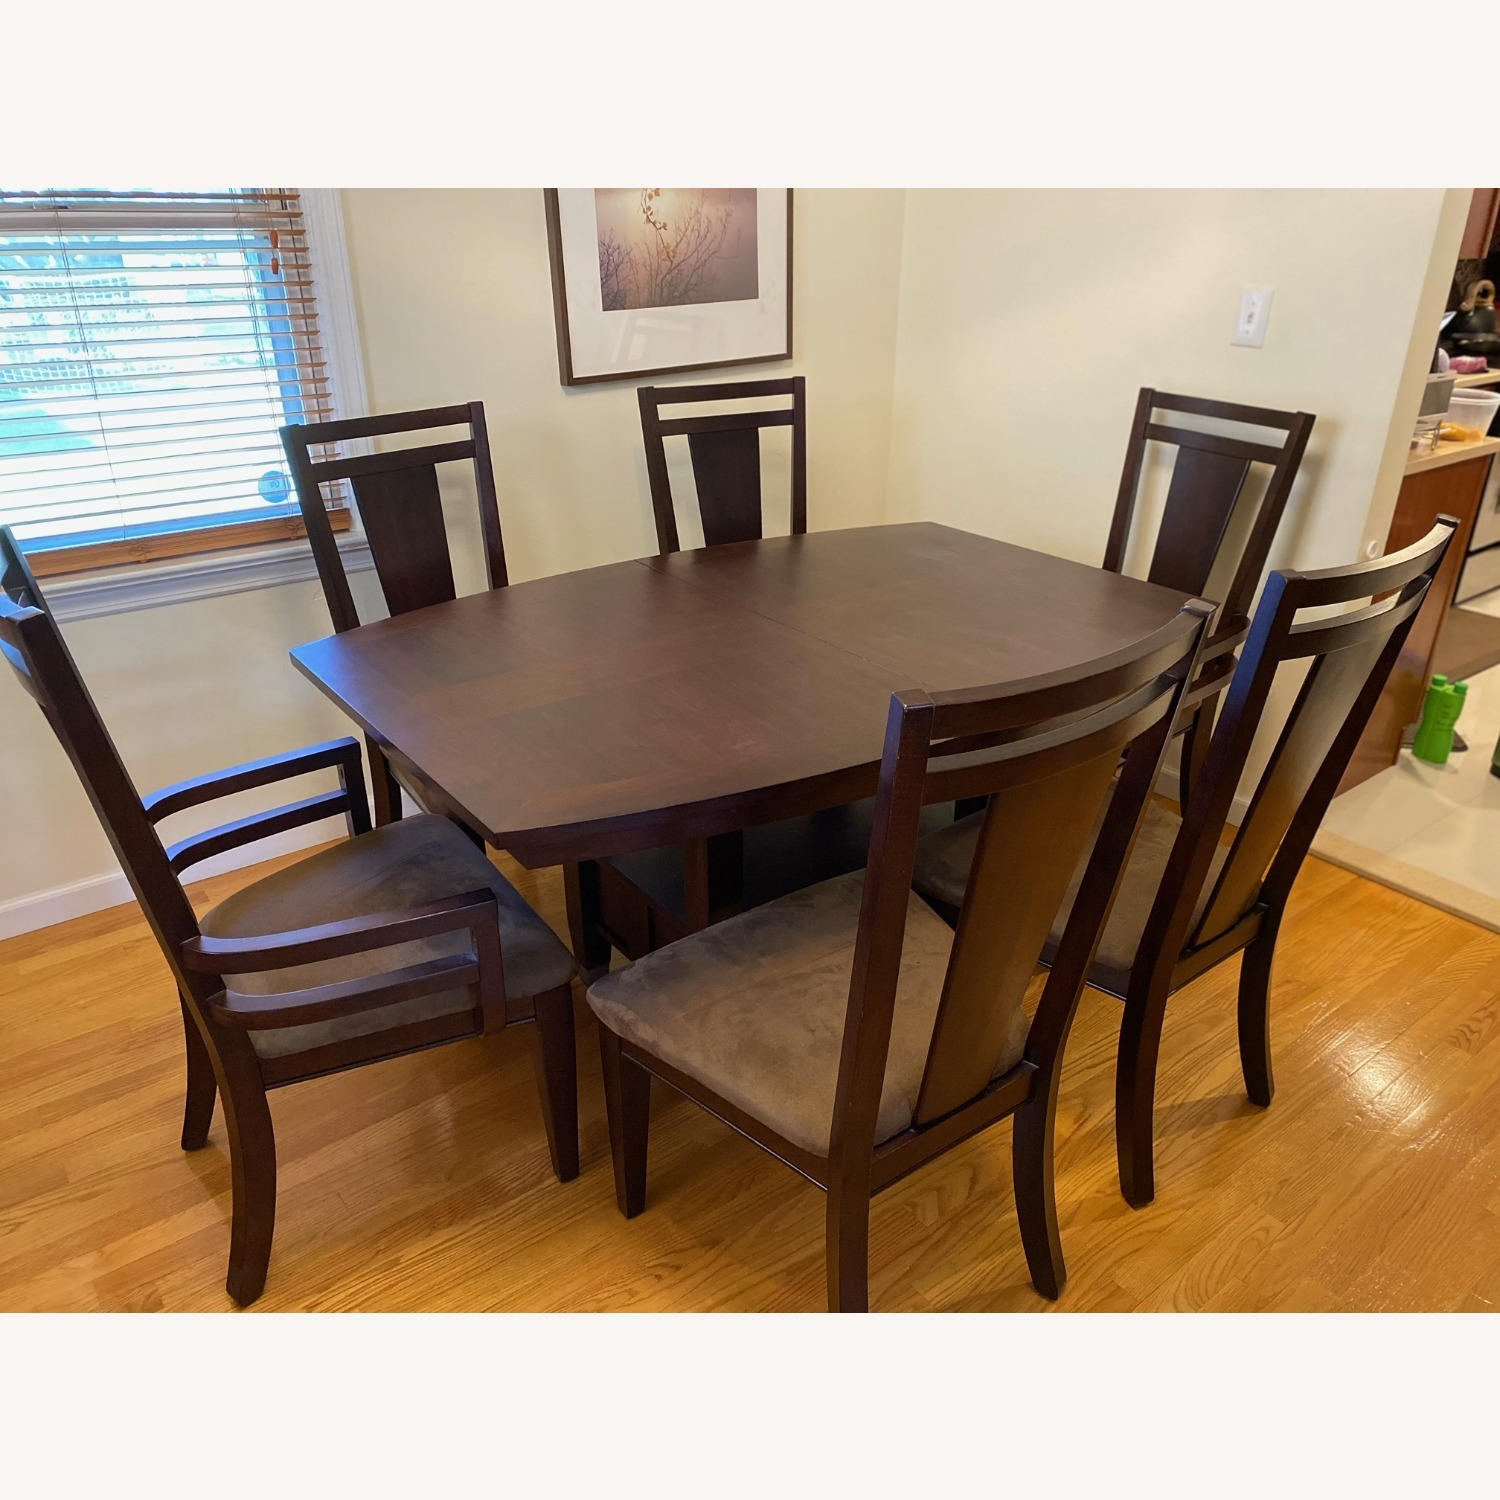 Broyhill Furniture 8-Piece Dining Set - image-5